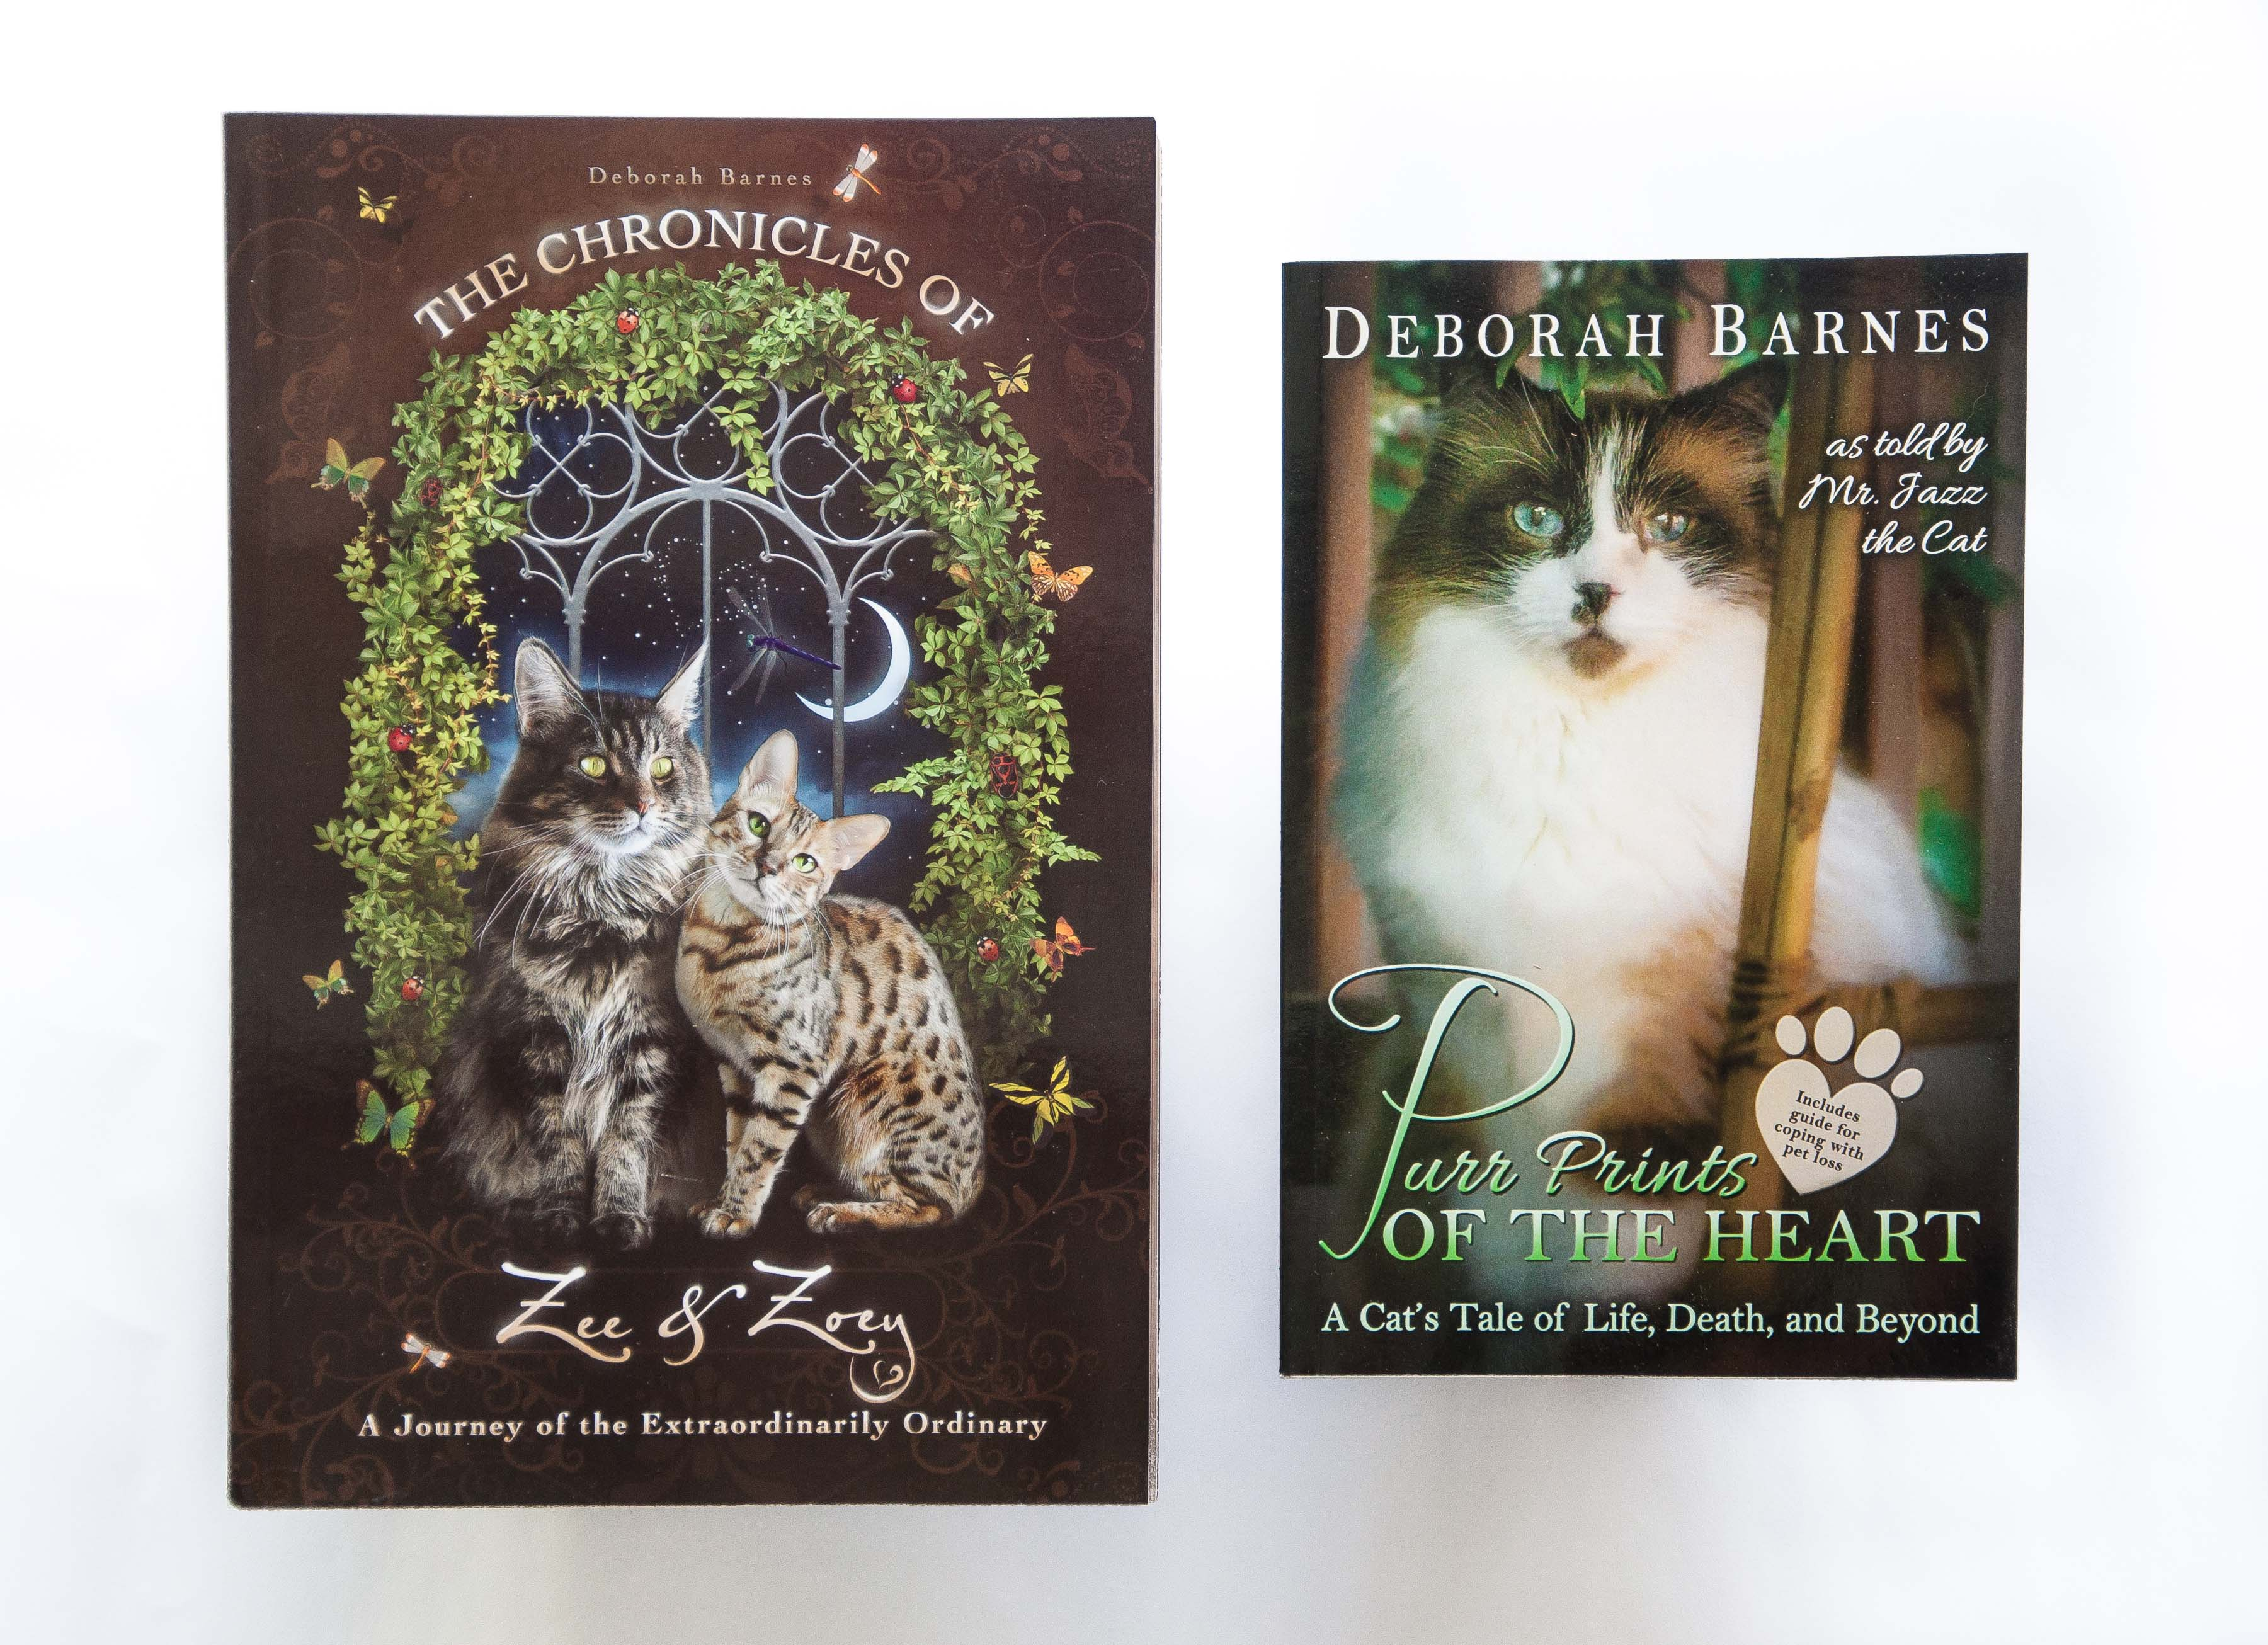 Books by Deborah Barnes for cat lovers - The Chronicles of Zee & Zoey and Purr Prints of the Heart